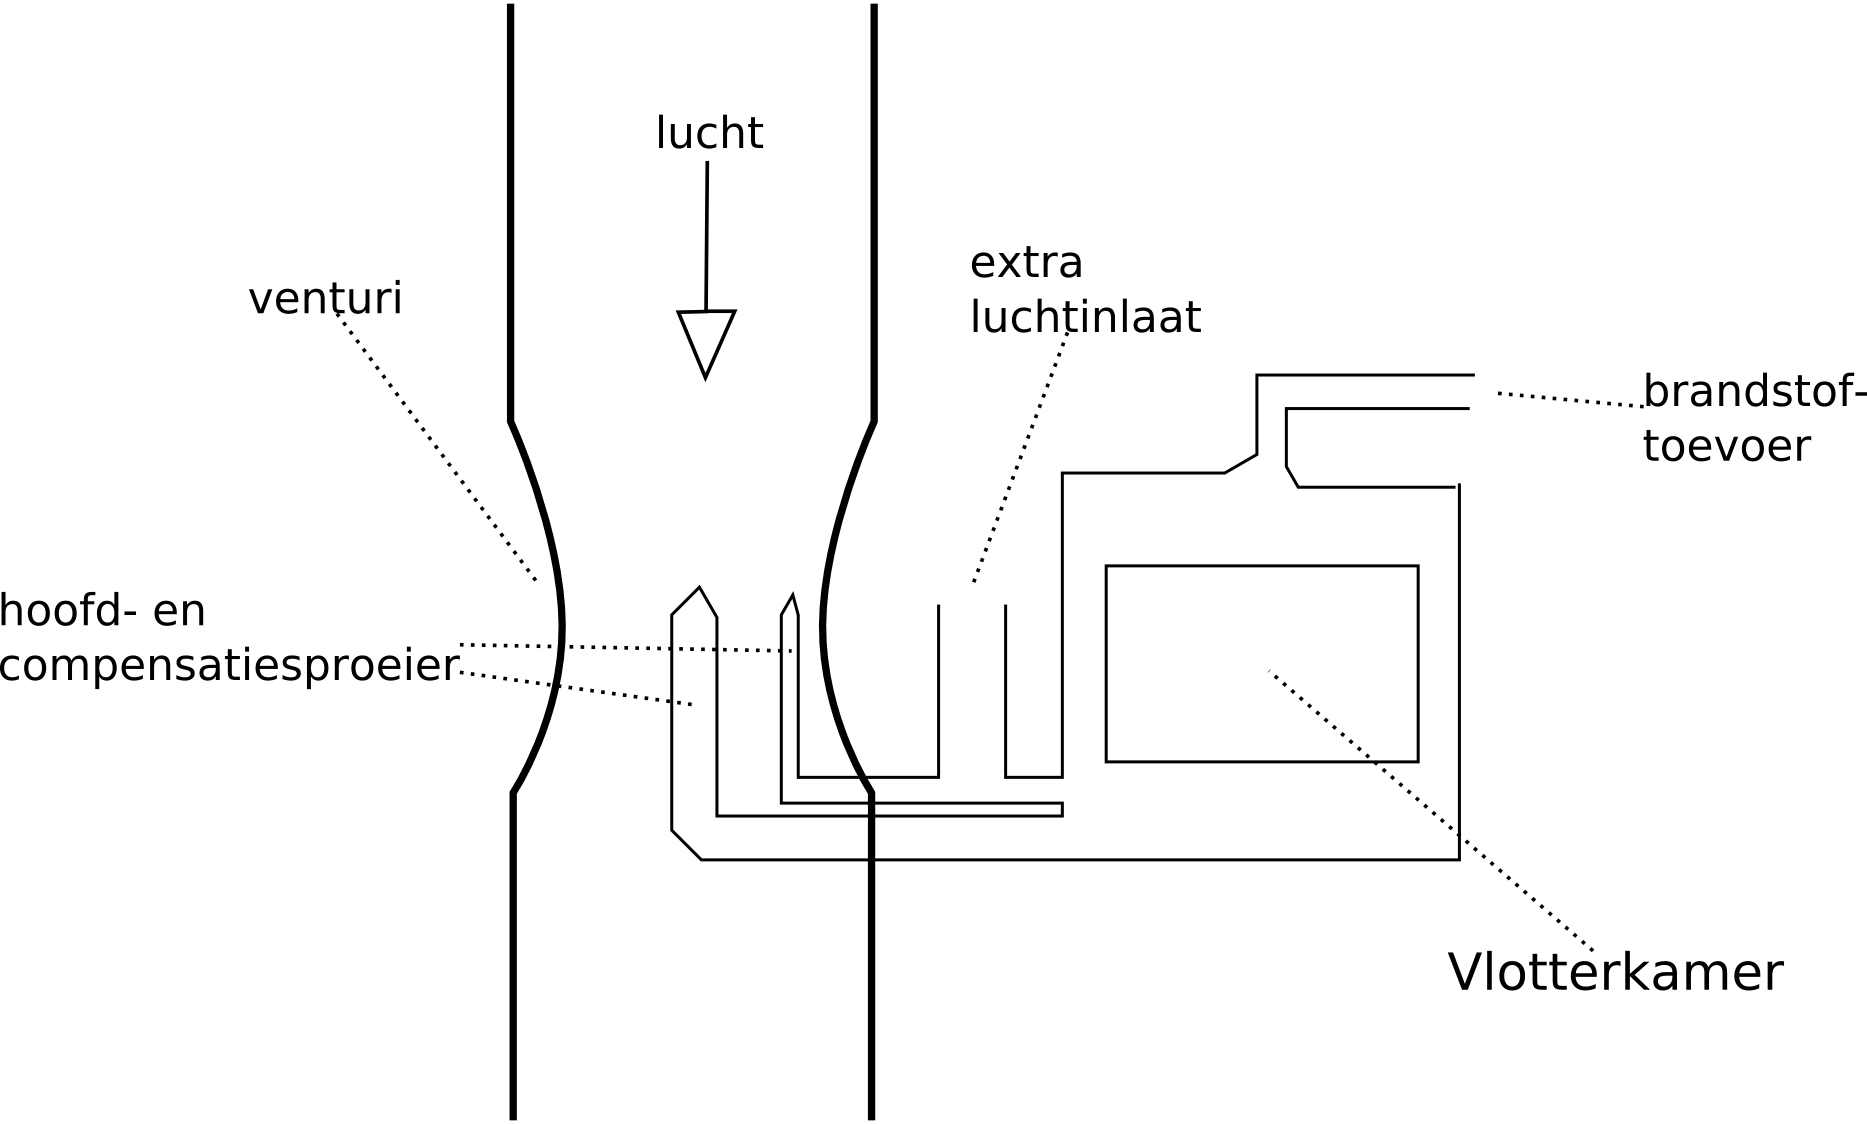 Venturi Diagram In Ford Venturi Oil Burner Venturi